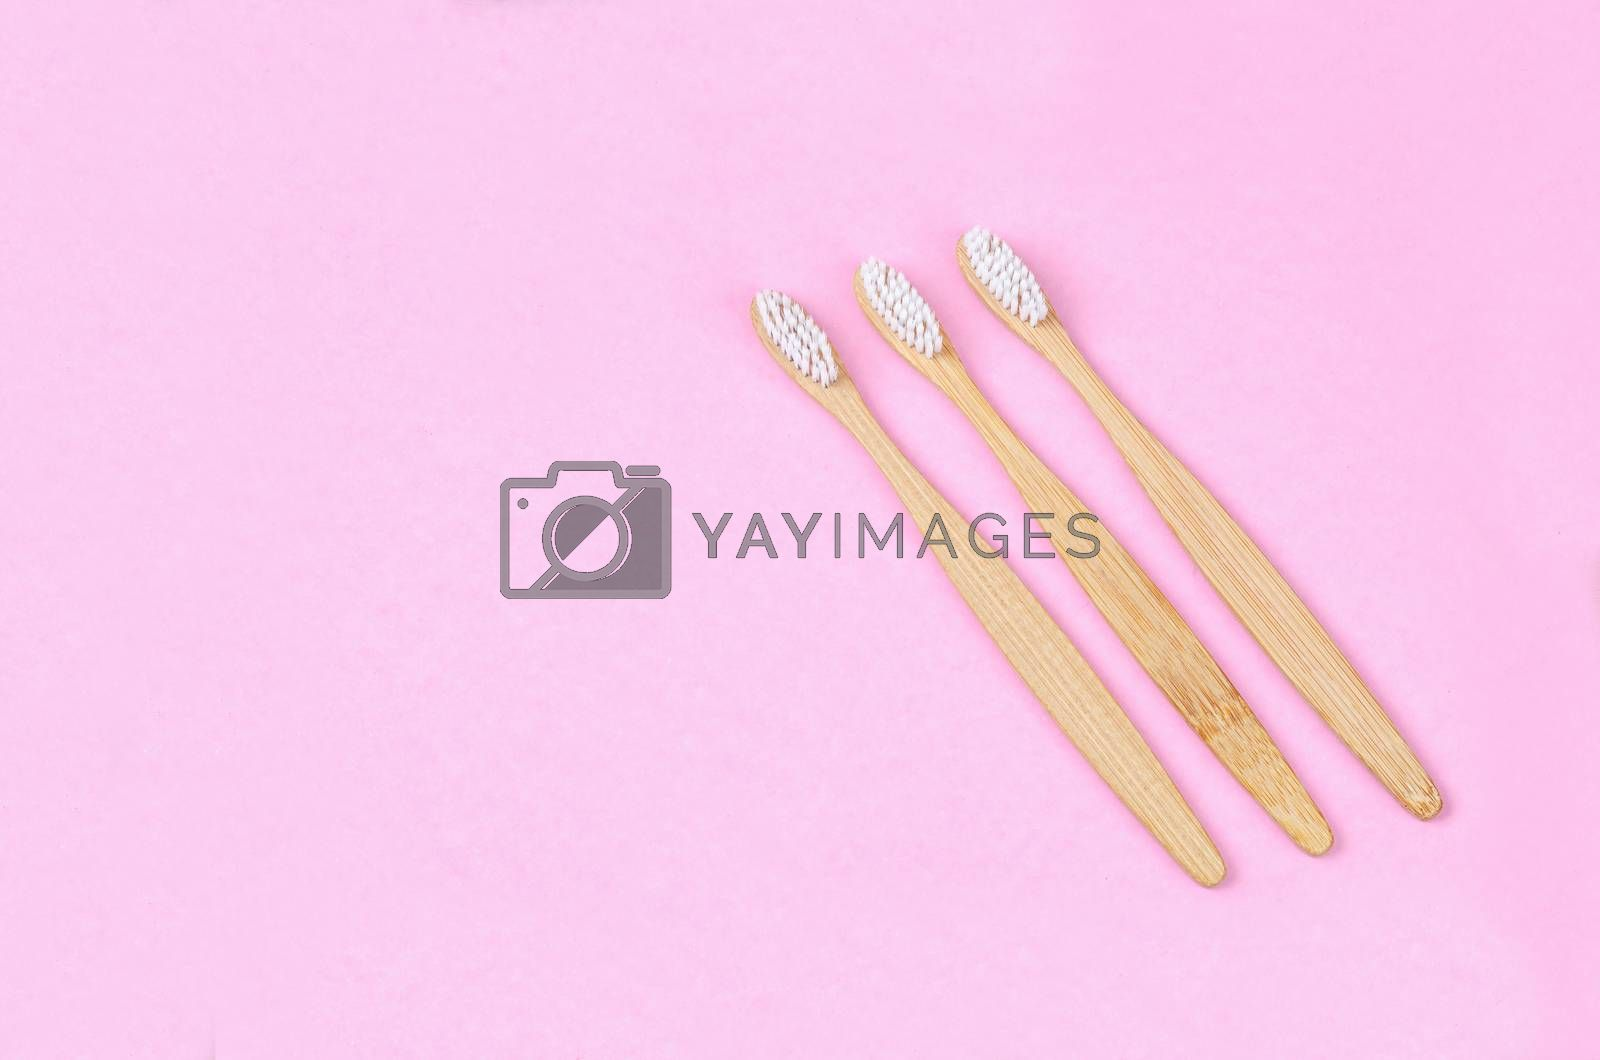 Bamboo toothbrushes on pink background with free space for your text or message.